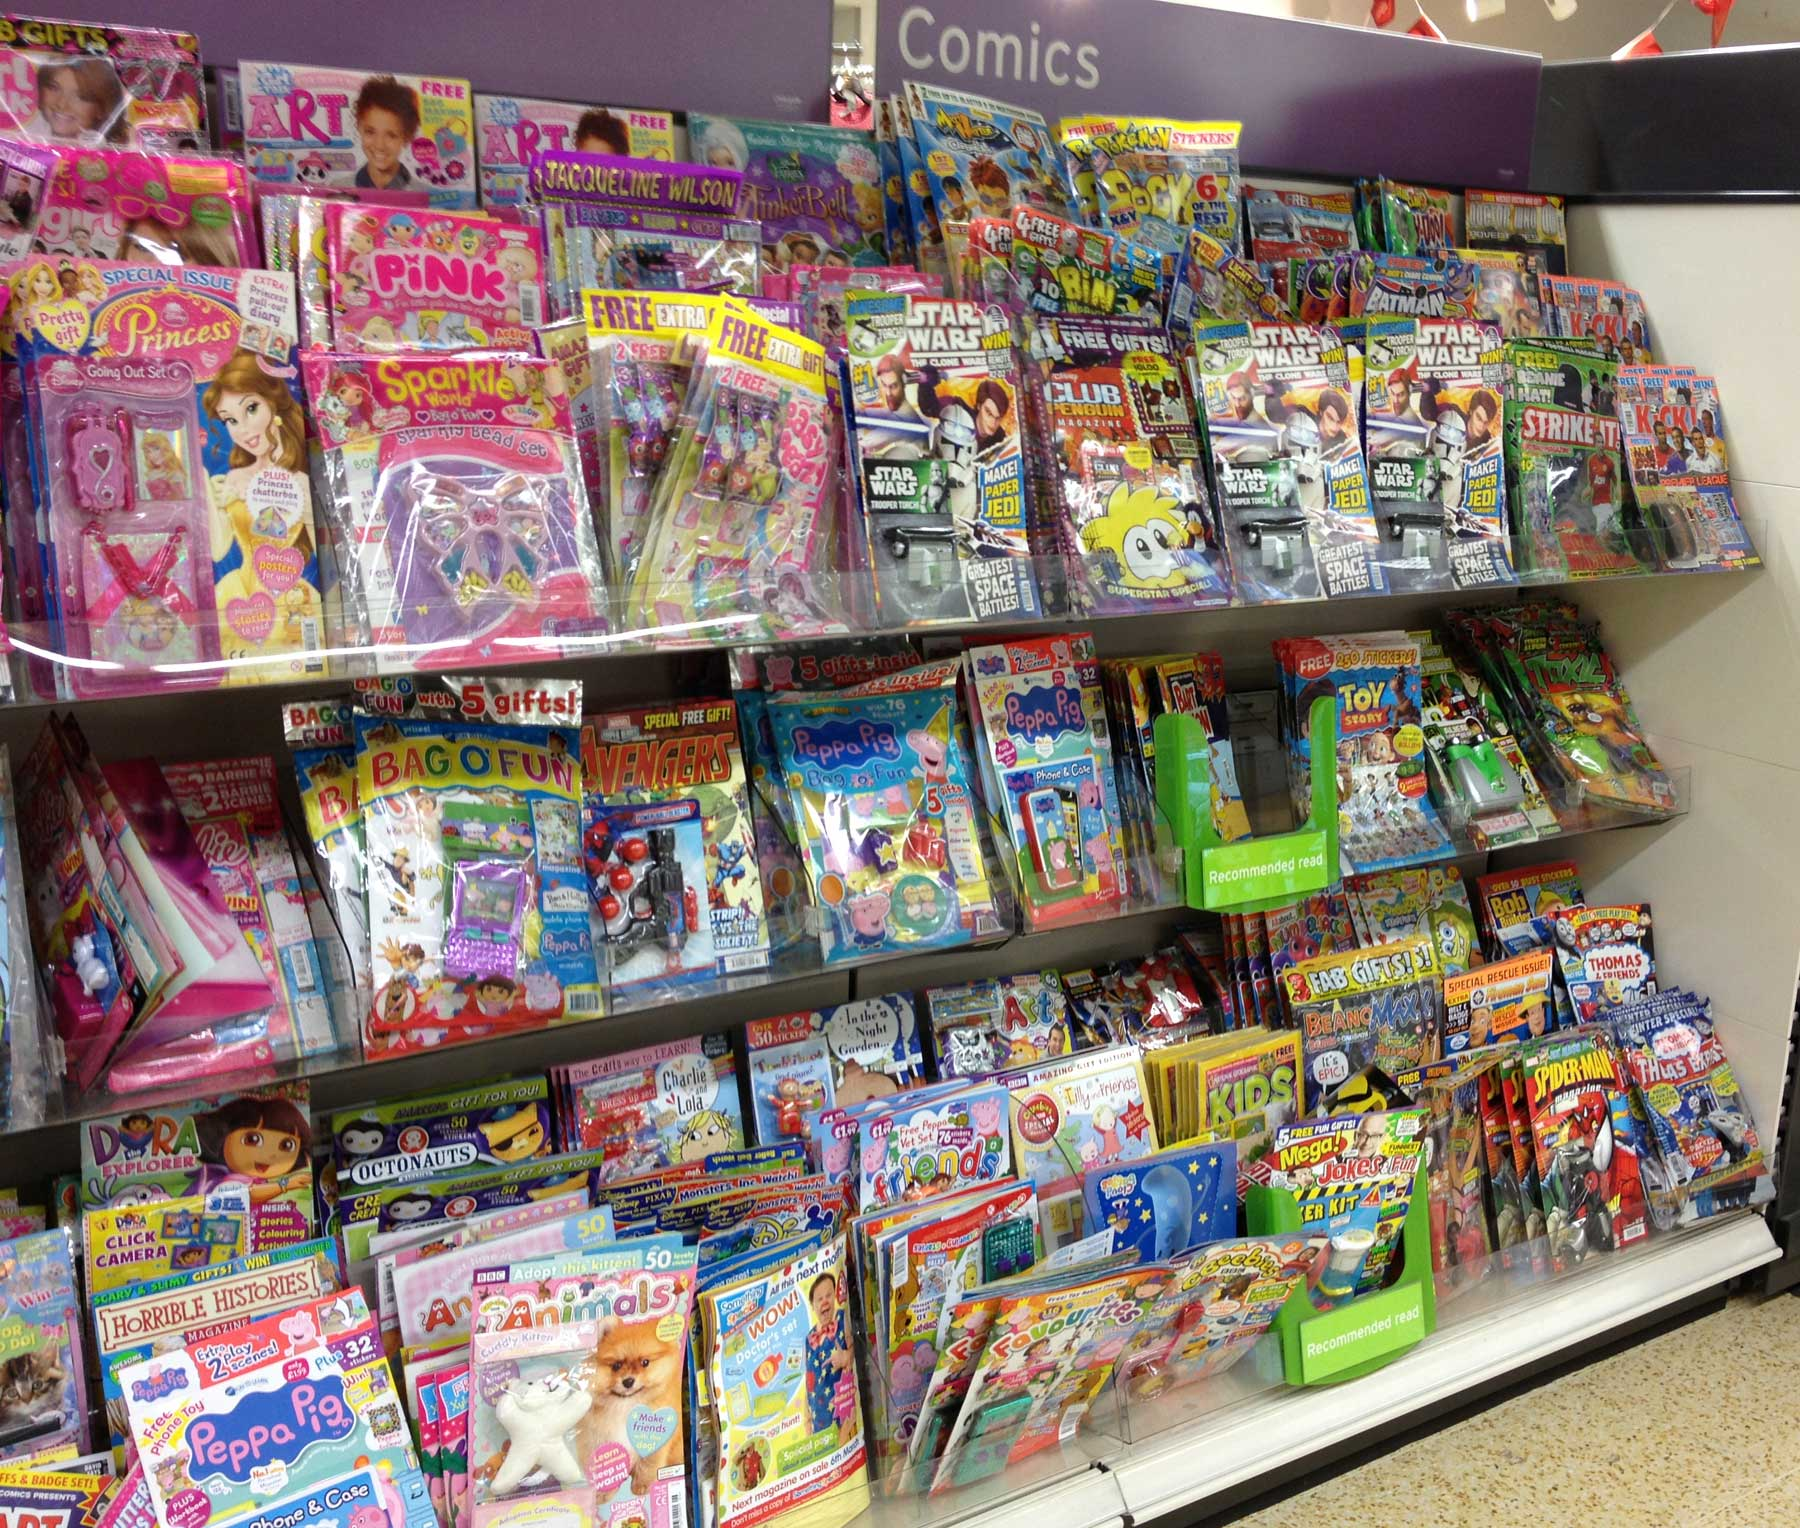 Sainsbury's Lancaster Comic Rack, February 2013